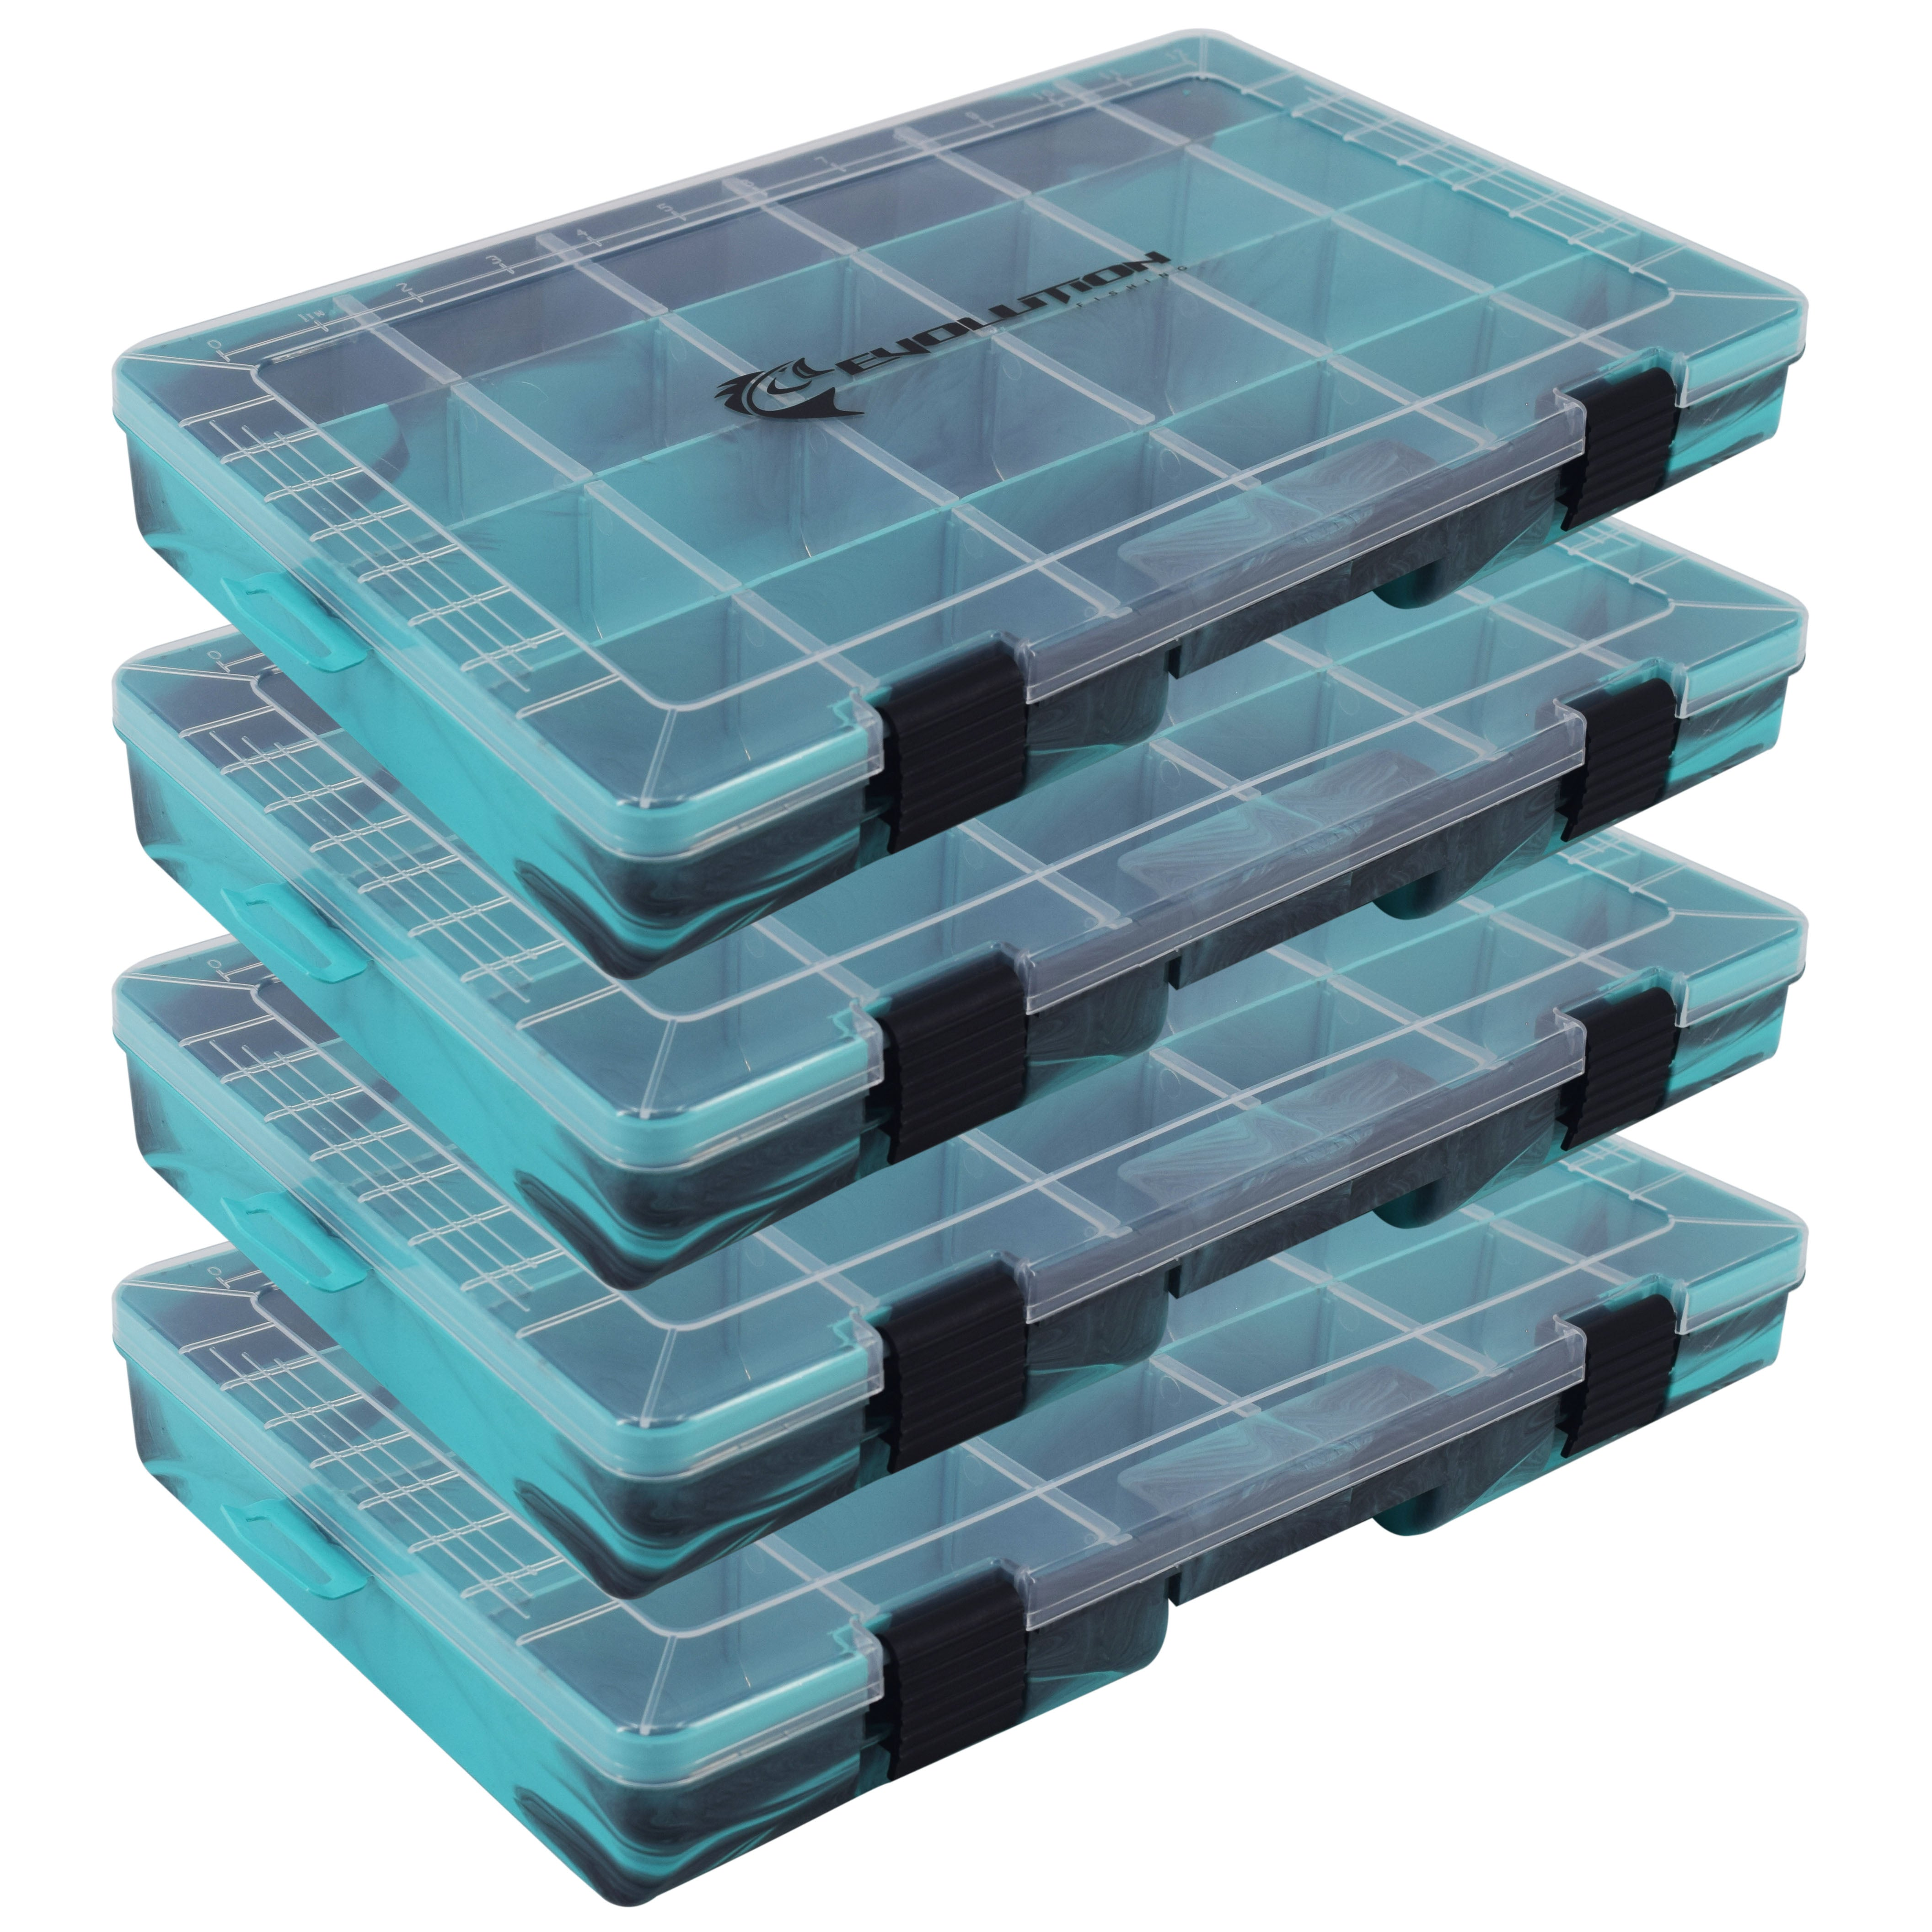 Drift Series 3700 Colored Tackle Tray (4 Pack) - Multiple Colors Available